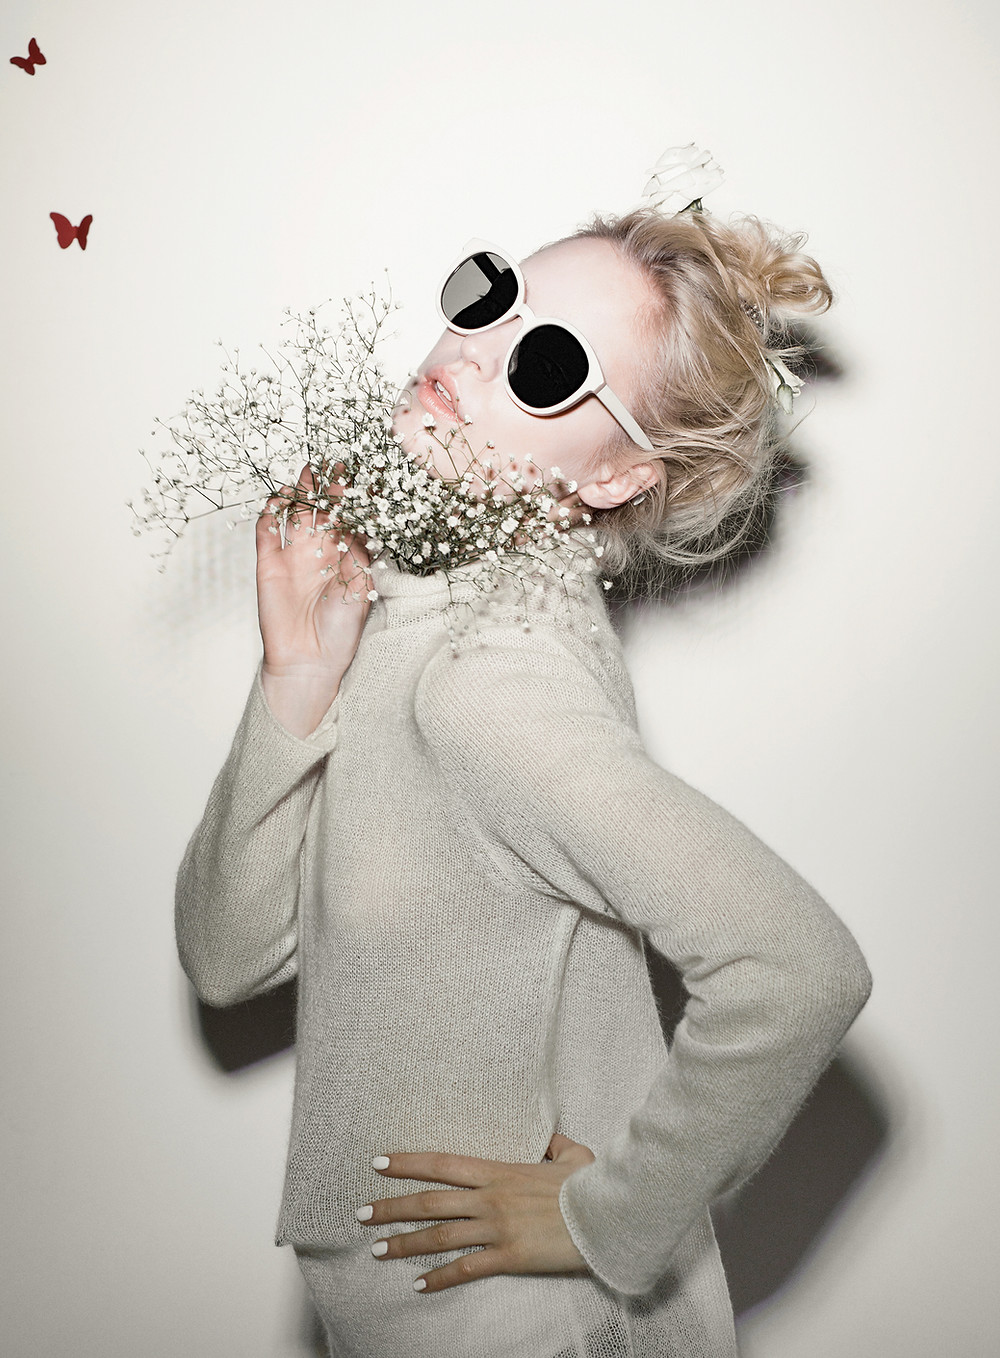 A confident woman. A woman with sunglasses. A woman holding some flowers around her neck. A woman wearing a cream jumper. A woman with blonde hair. Image with butterflies in the backdrop. A young and confident woman.